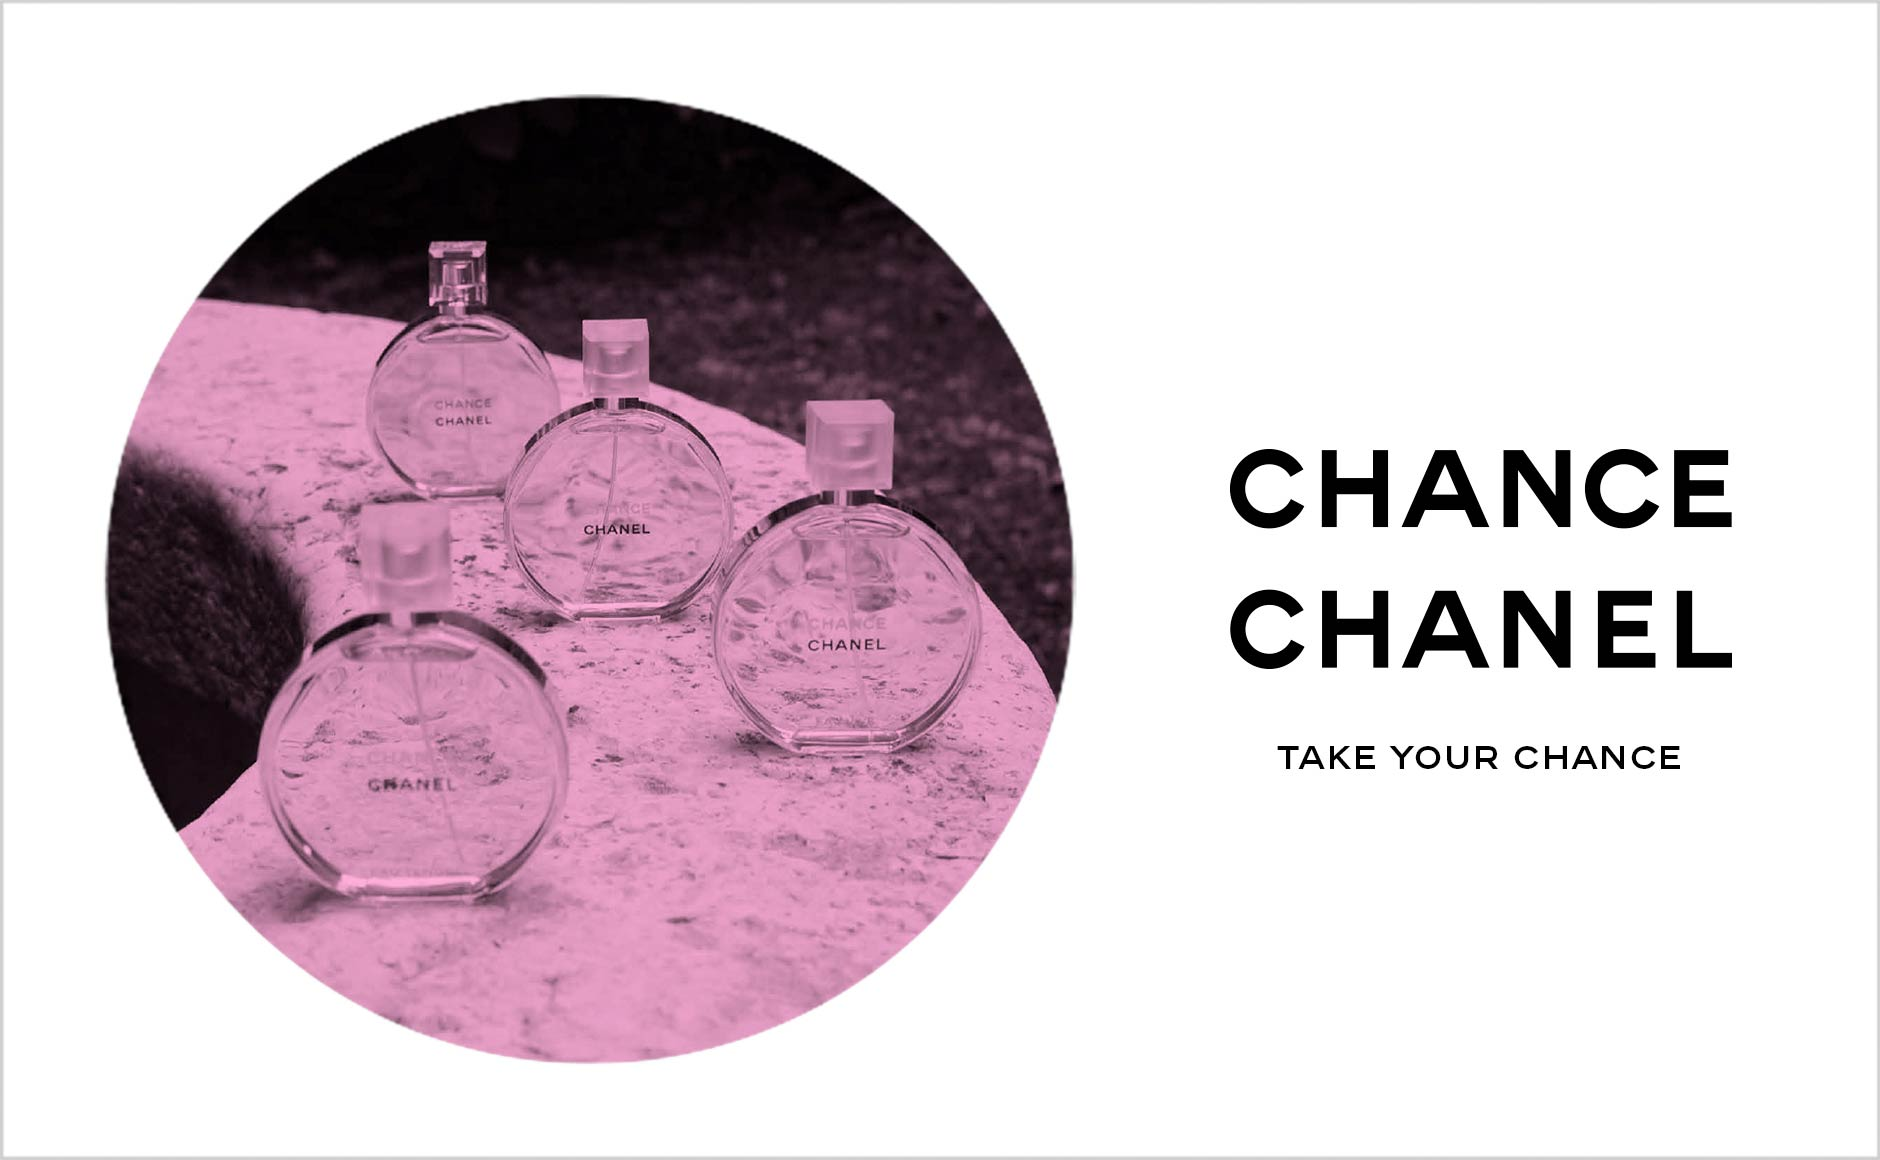 Chance Chanel - Take Your Chance